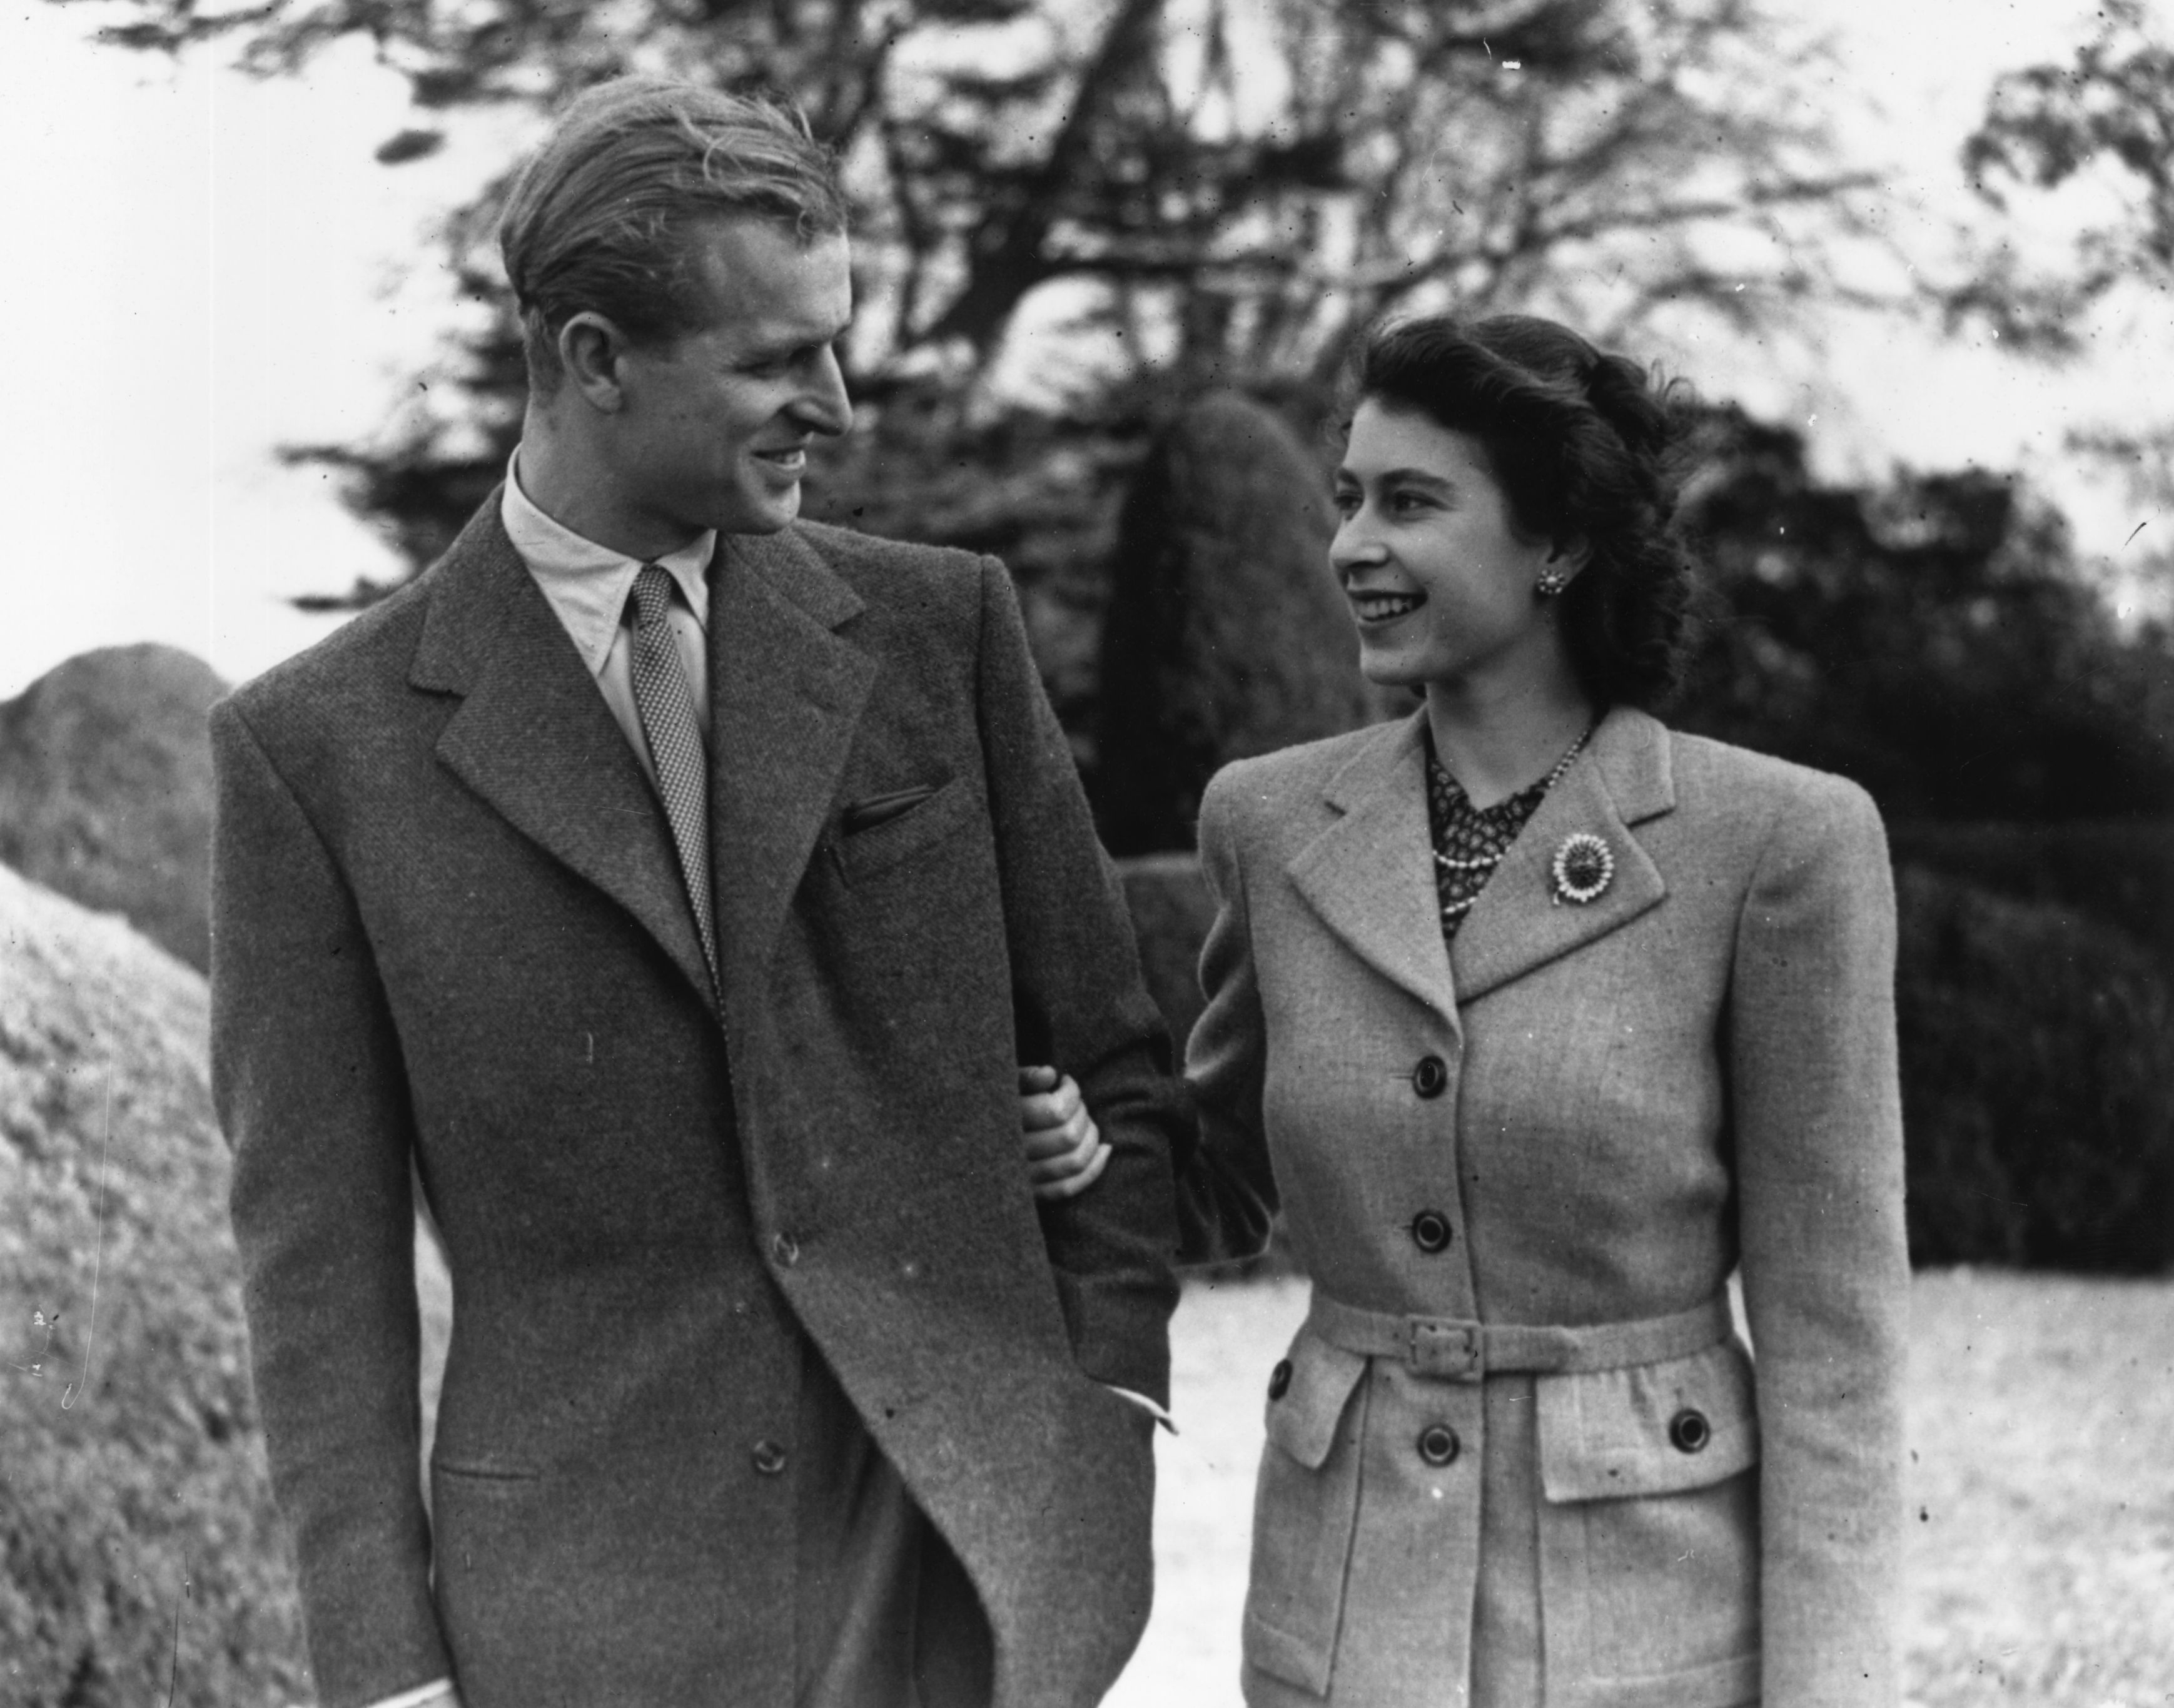 Image Source: Getty Images/Topical Press Agency/Princess Elizabeth and The Prince Philip, Duke of Edinburgh enjoying a walk during their honeymoon at Broadlands, Romsey, Hampshire